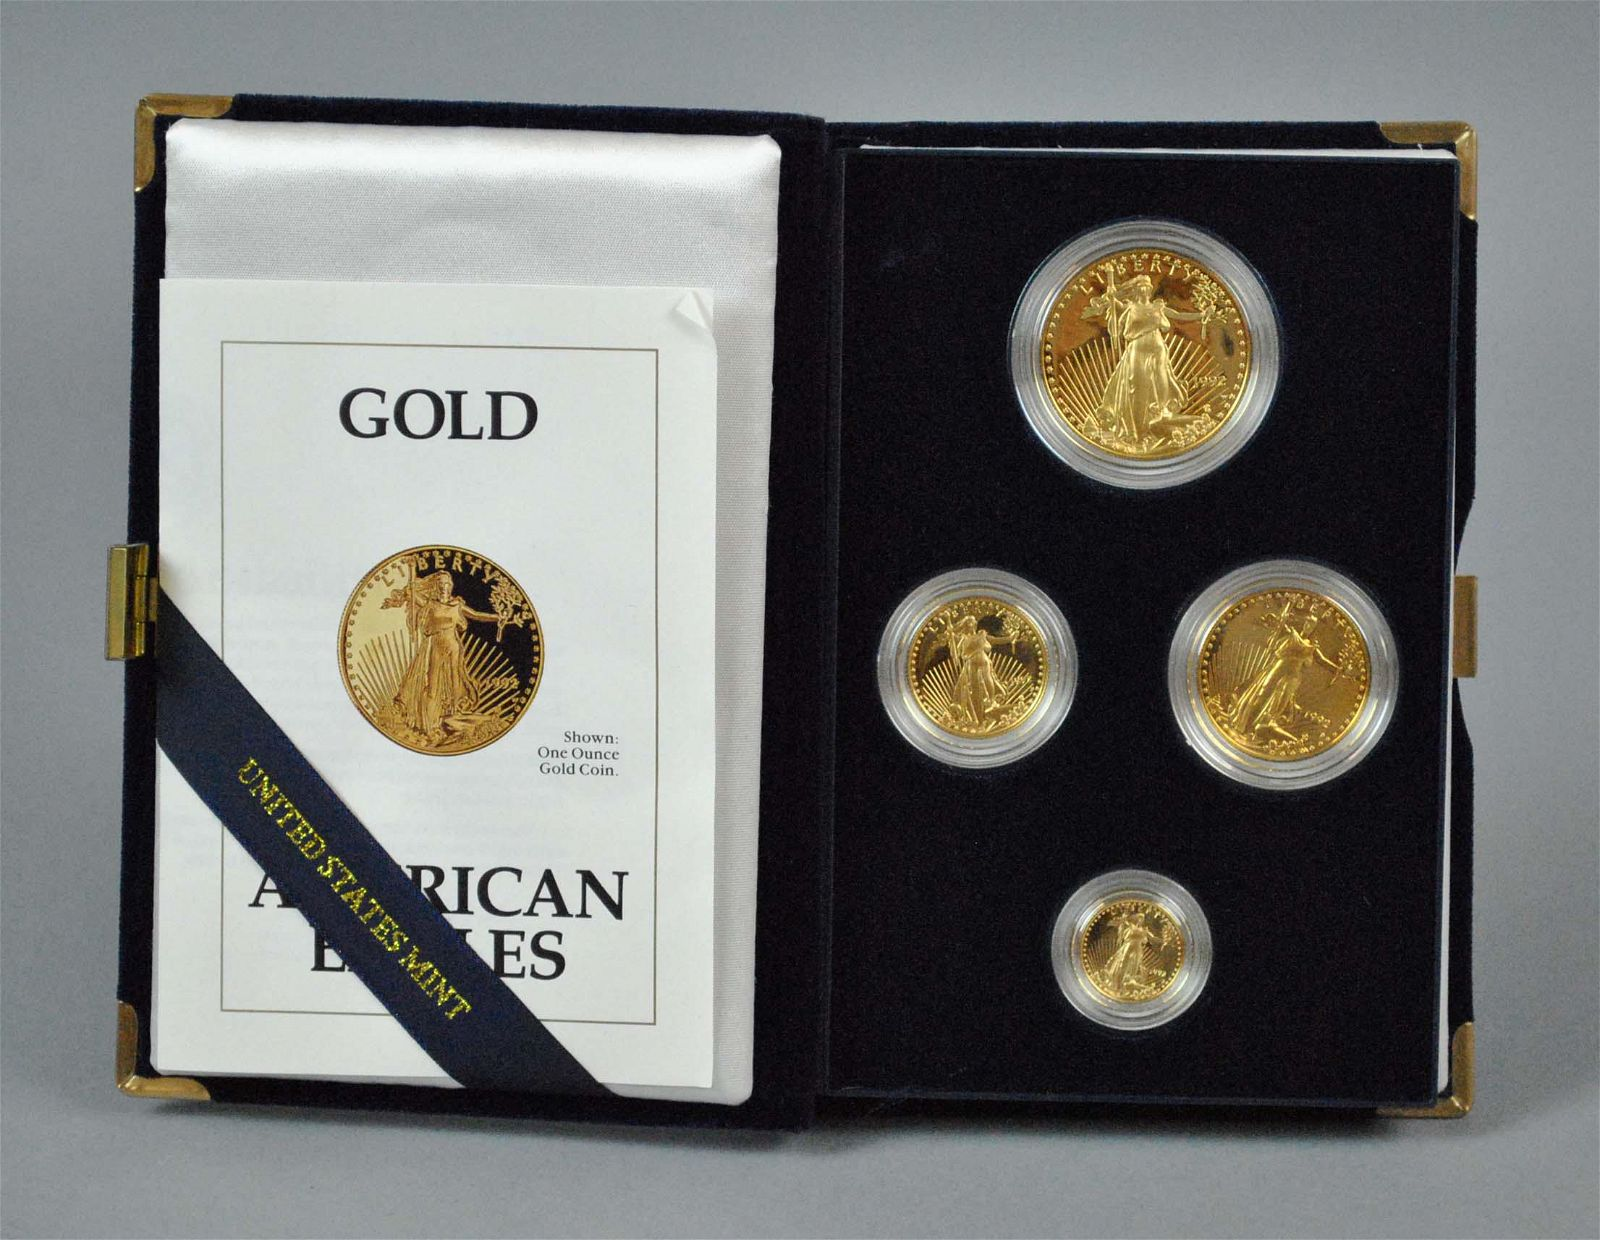 1992 AMERICAN EAGLE 4-COIN GOLD PROOF SET